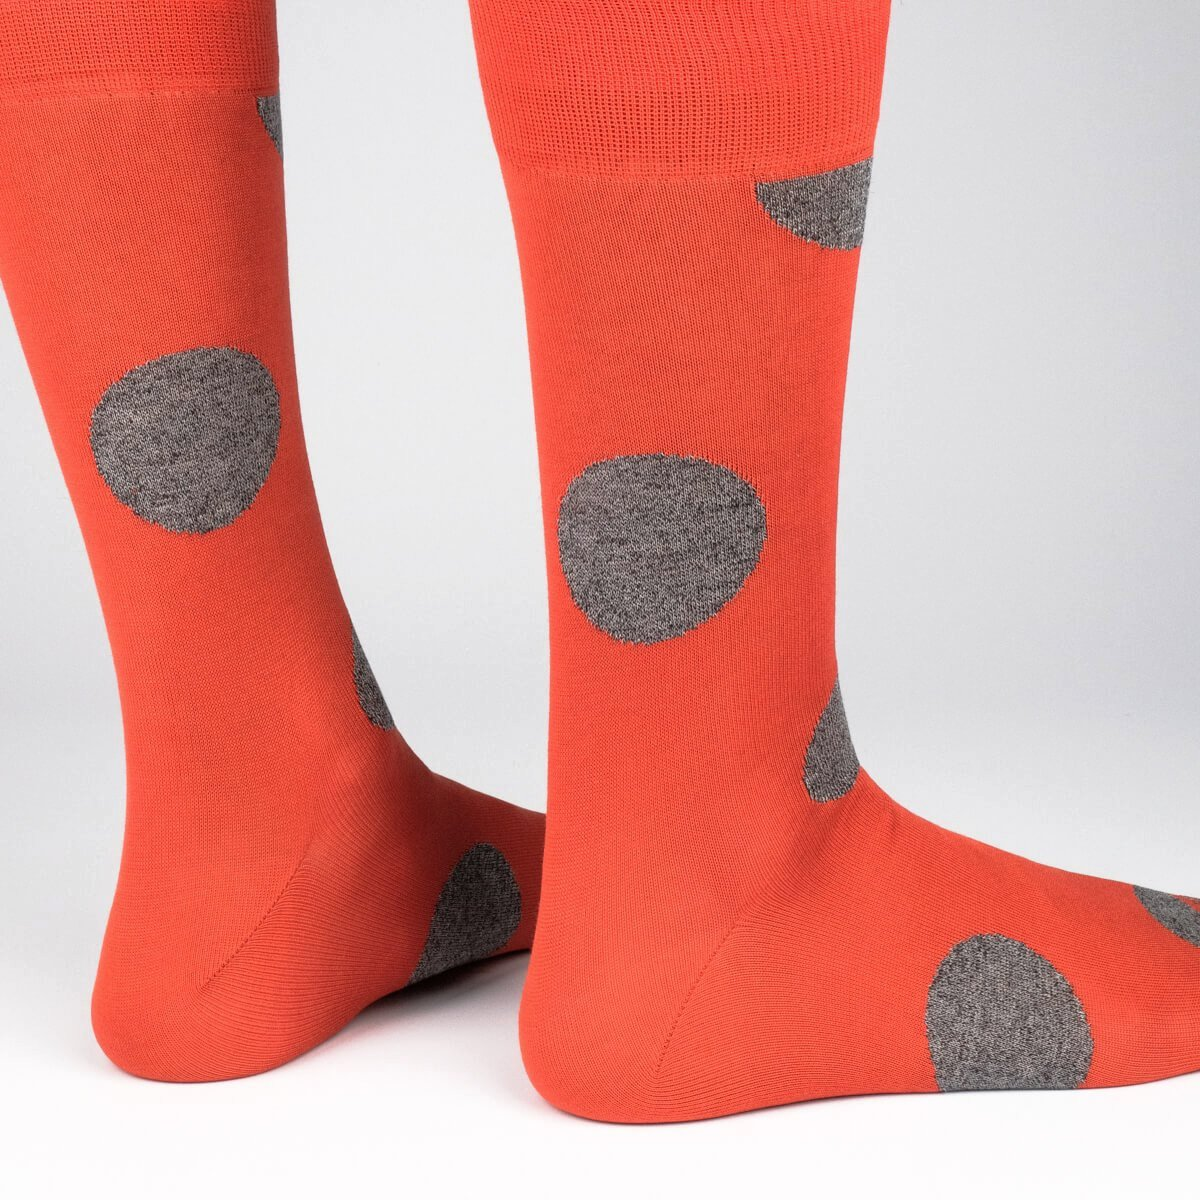 Mens Socks - Big Dots - Orange⎪Etiquette Clothiers